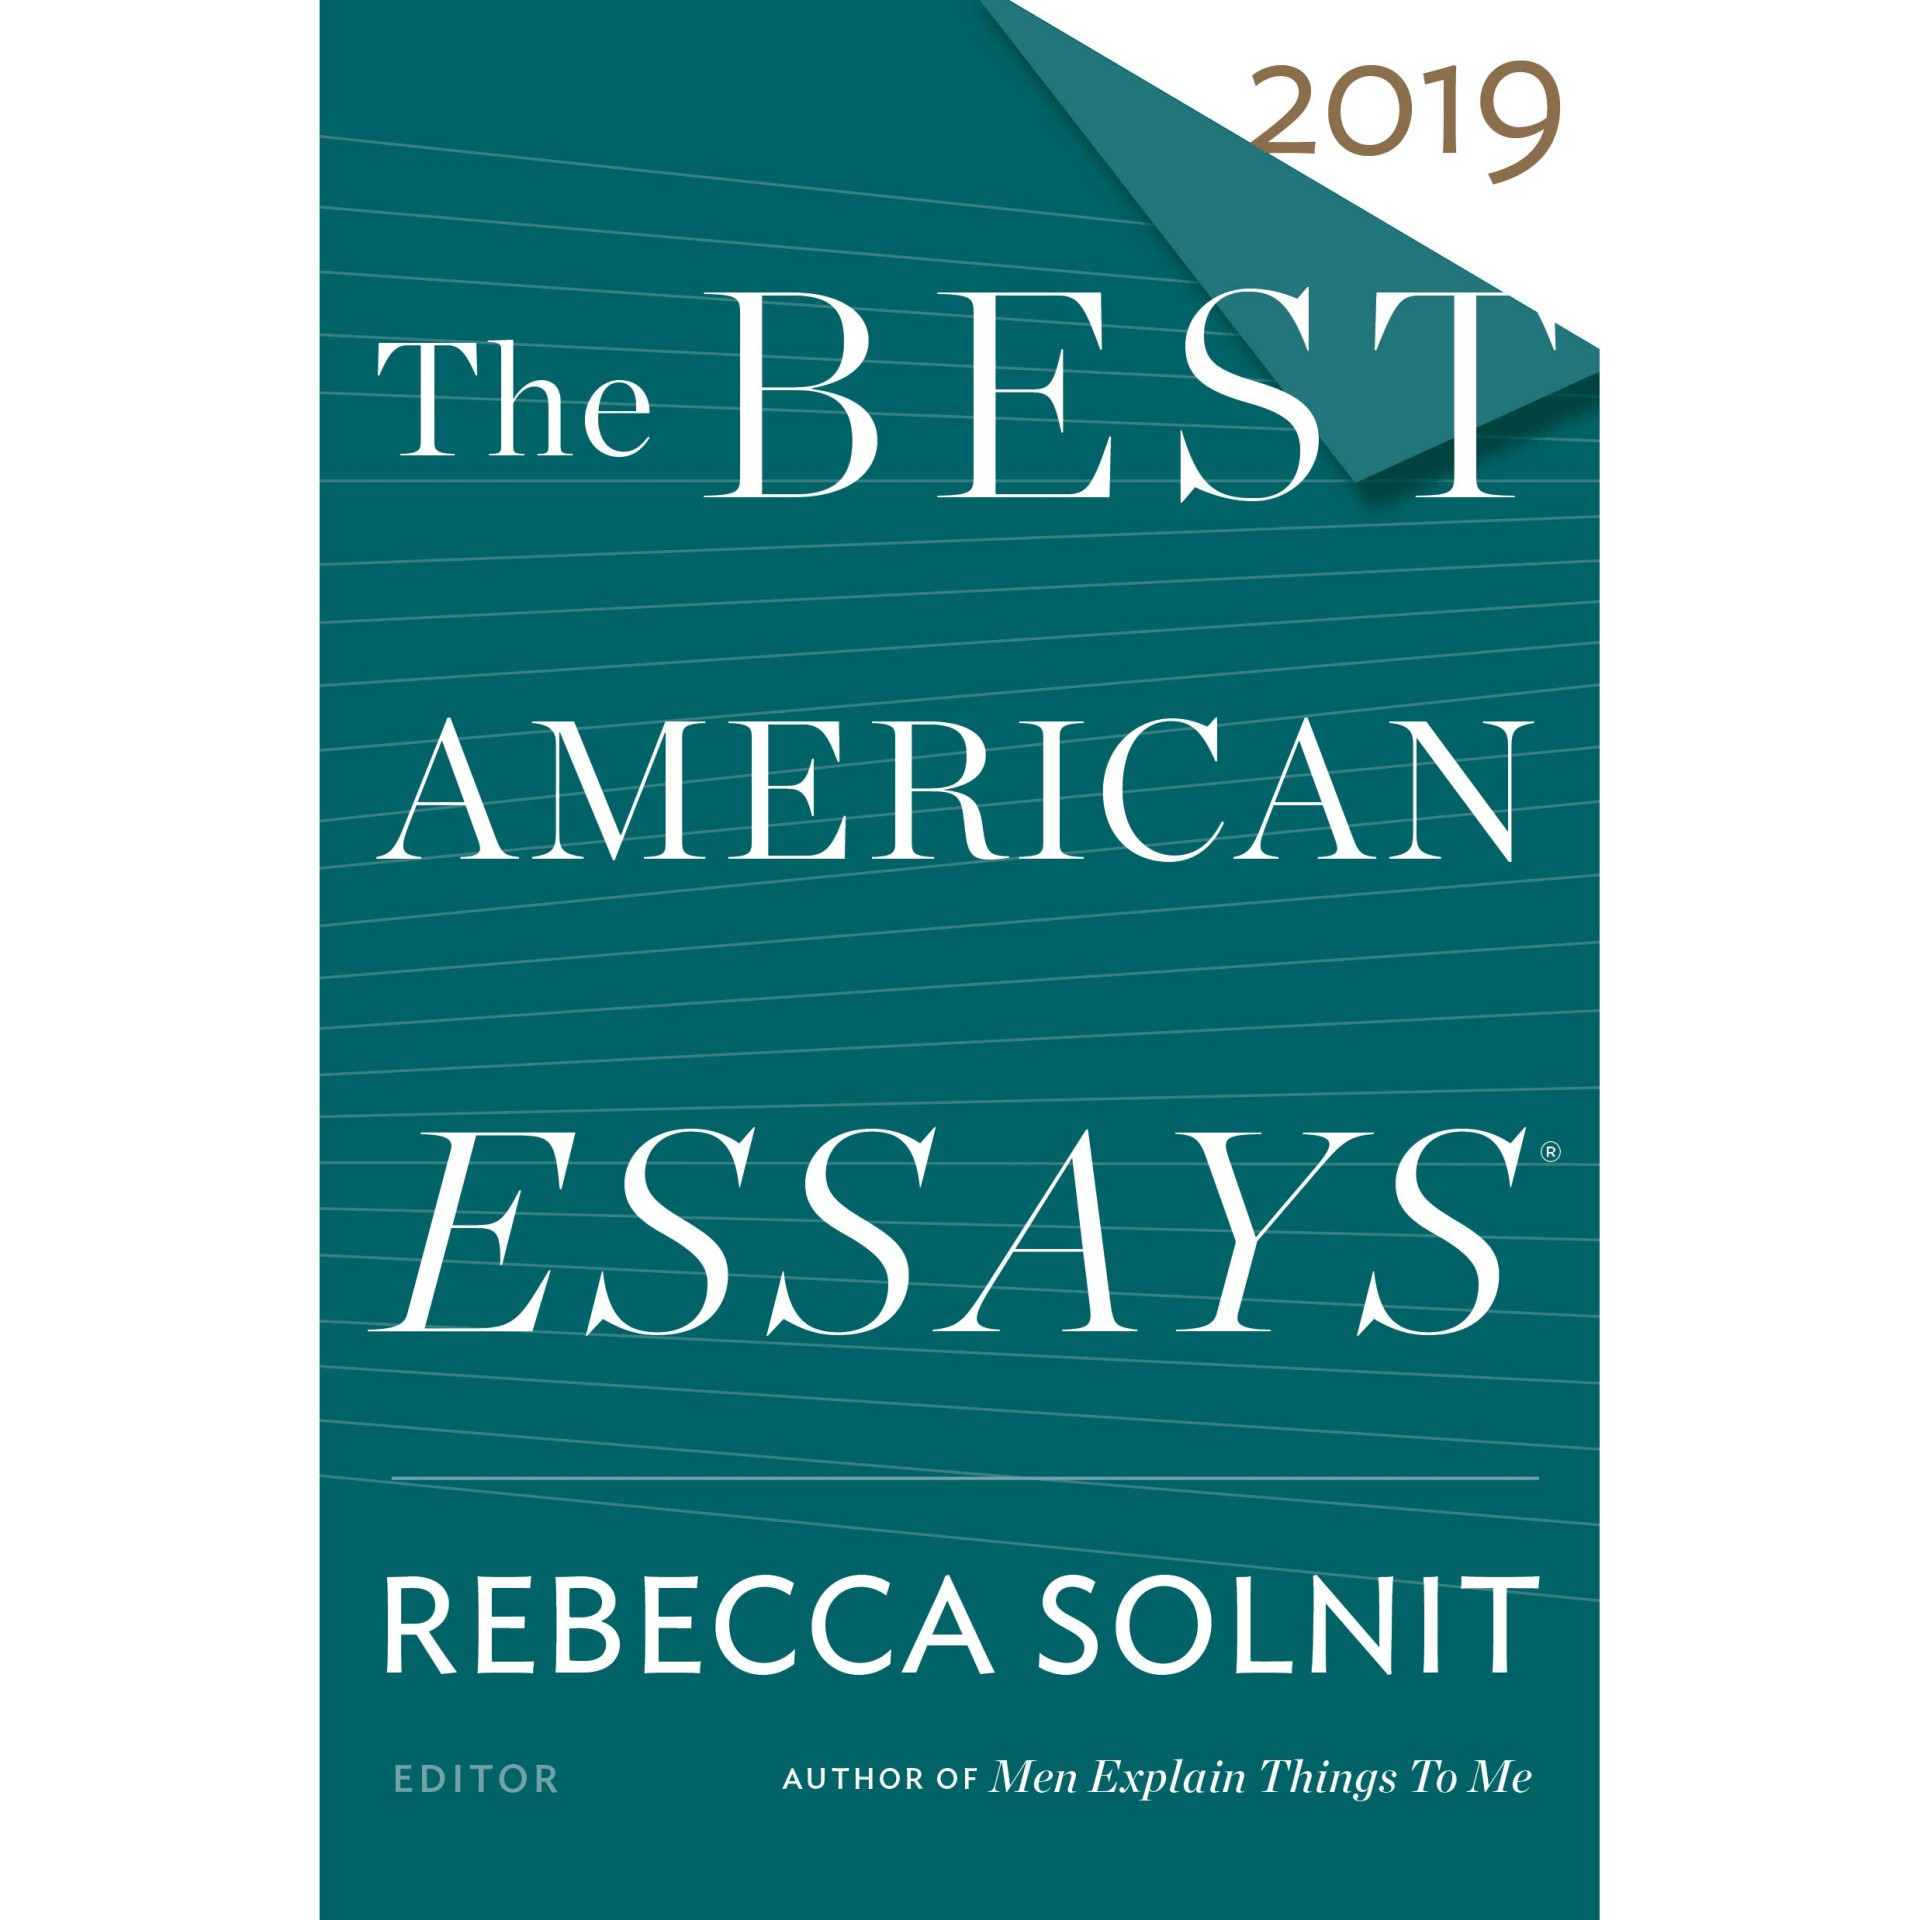 013 The Best American Essays  Uy2475 Ss2475 Essay Wonderful Of Century Table Contents 2013 Pdf Download1920